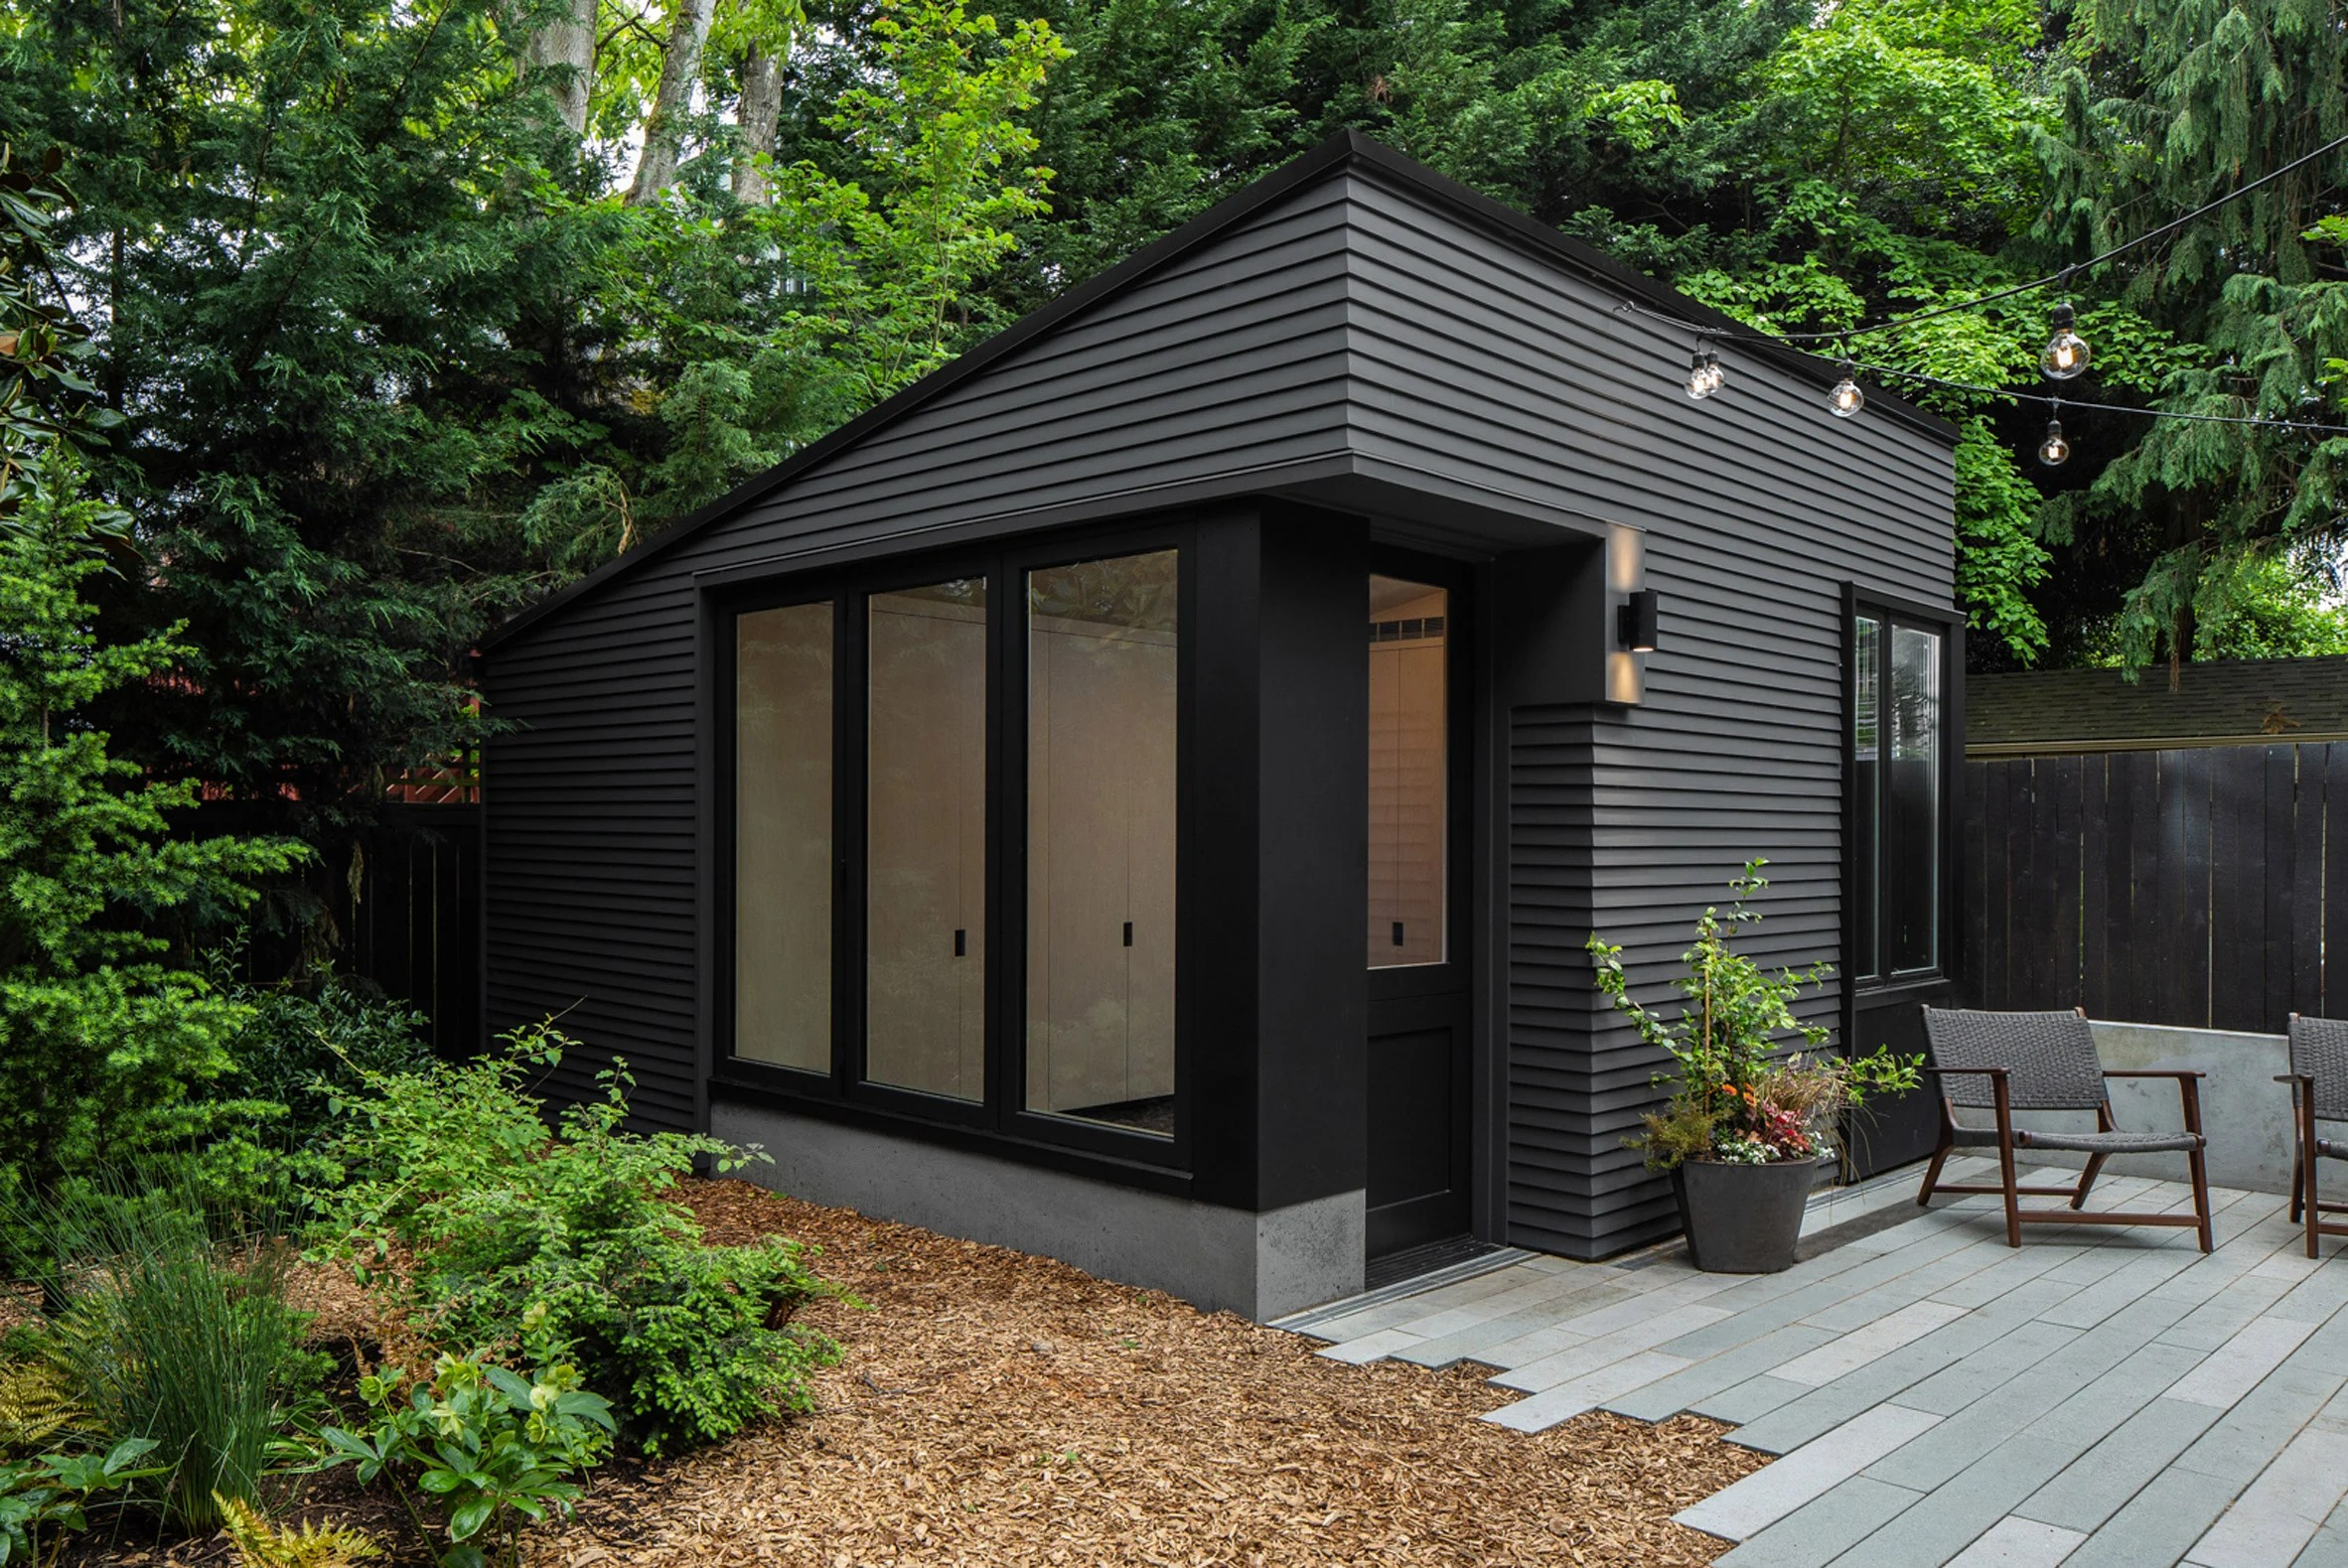 A black wooden shed in a garden in Seattle